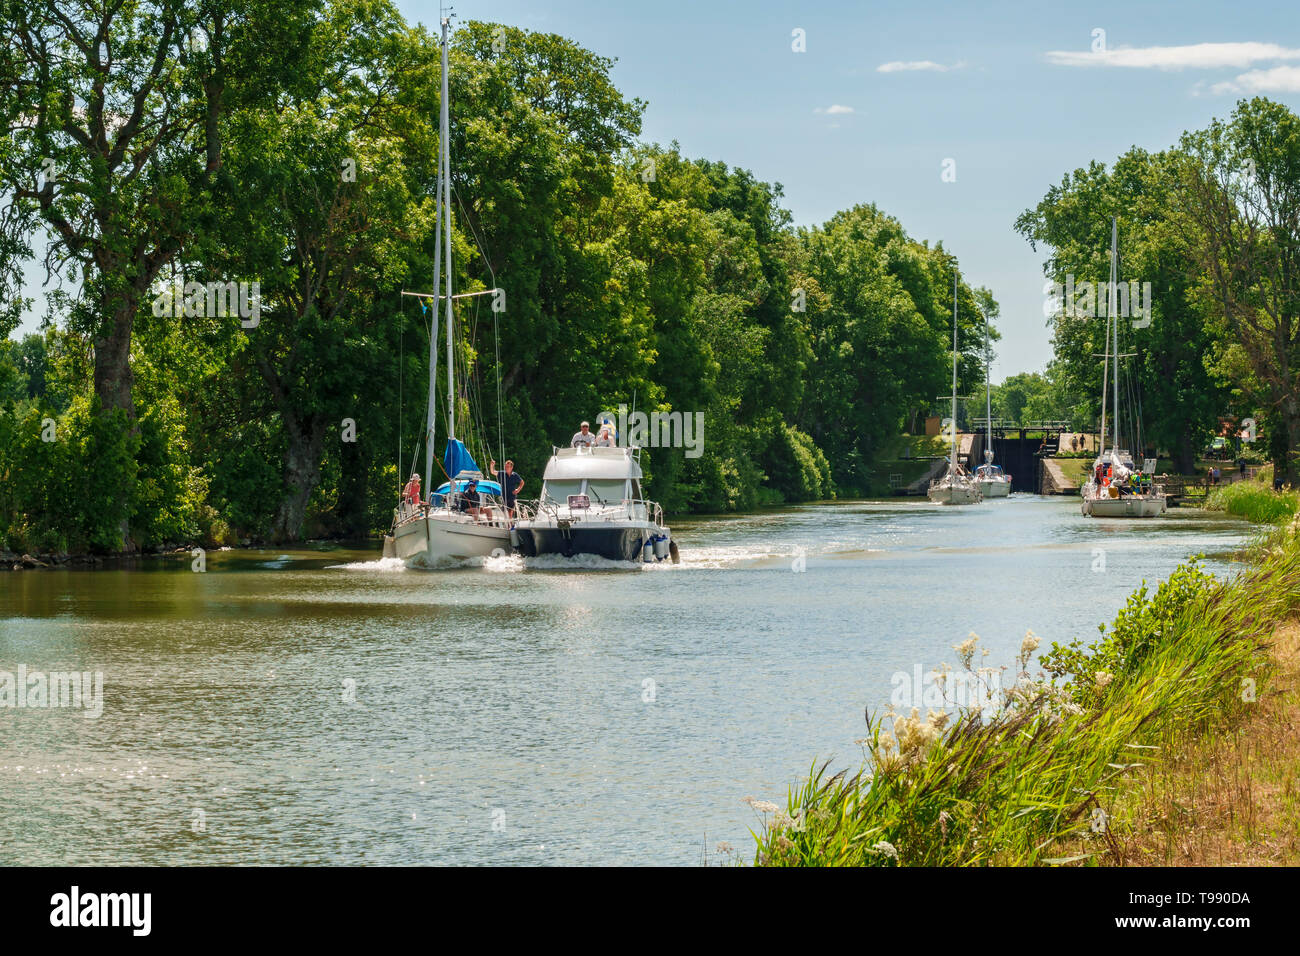 Leisure boats in a beautiful leafy canal in the summer - Stock Image